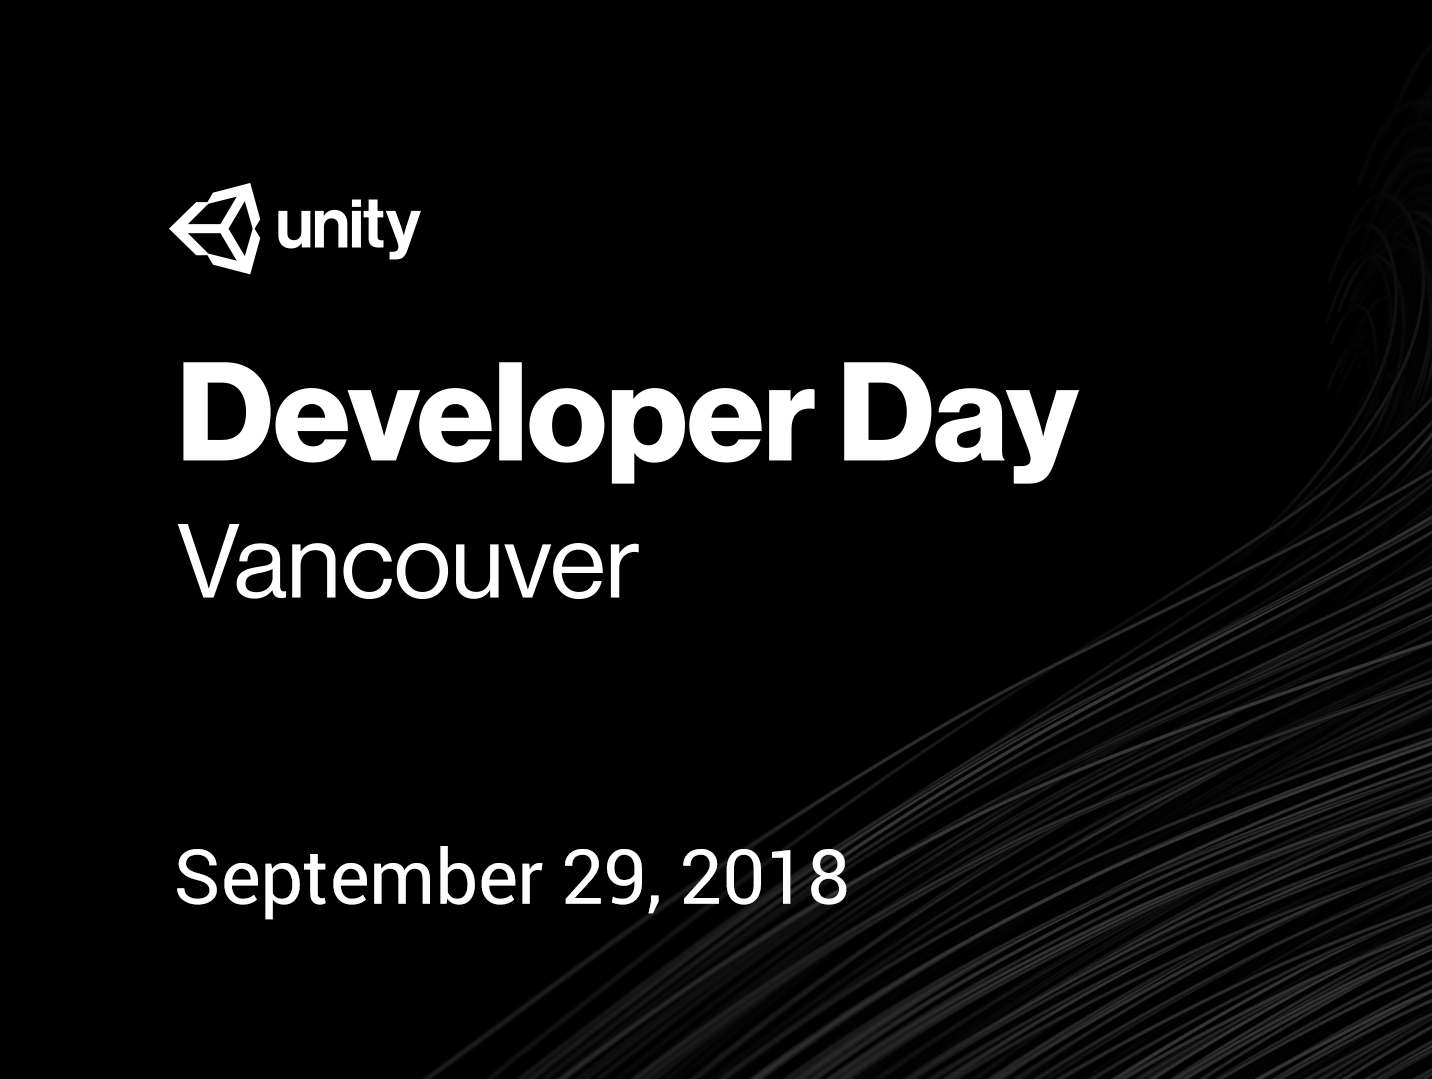 Unity Developer Day: Vancouver 2018